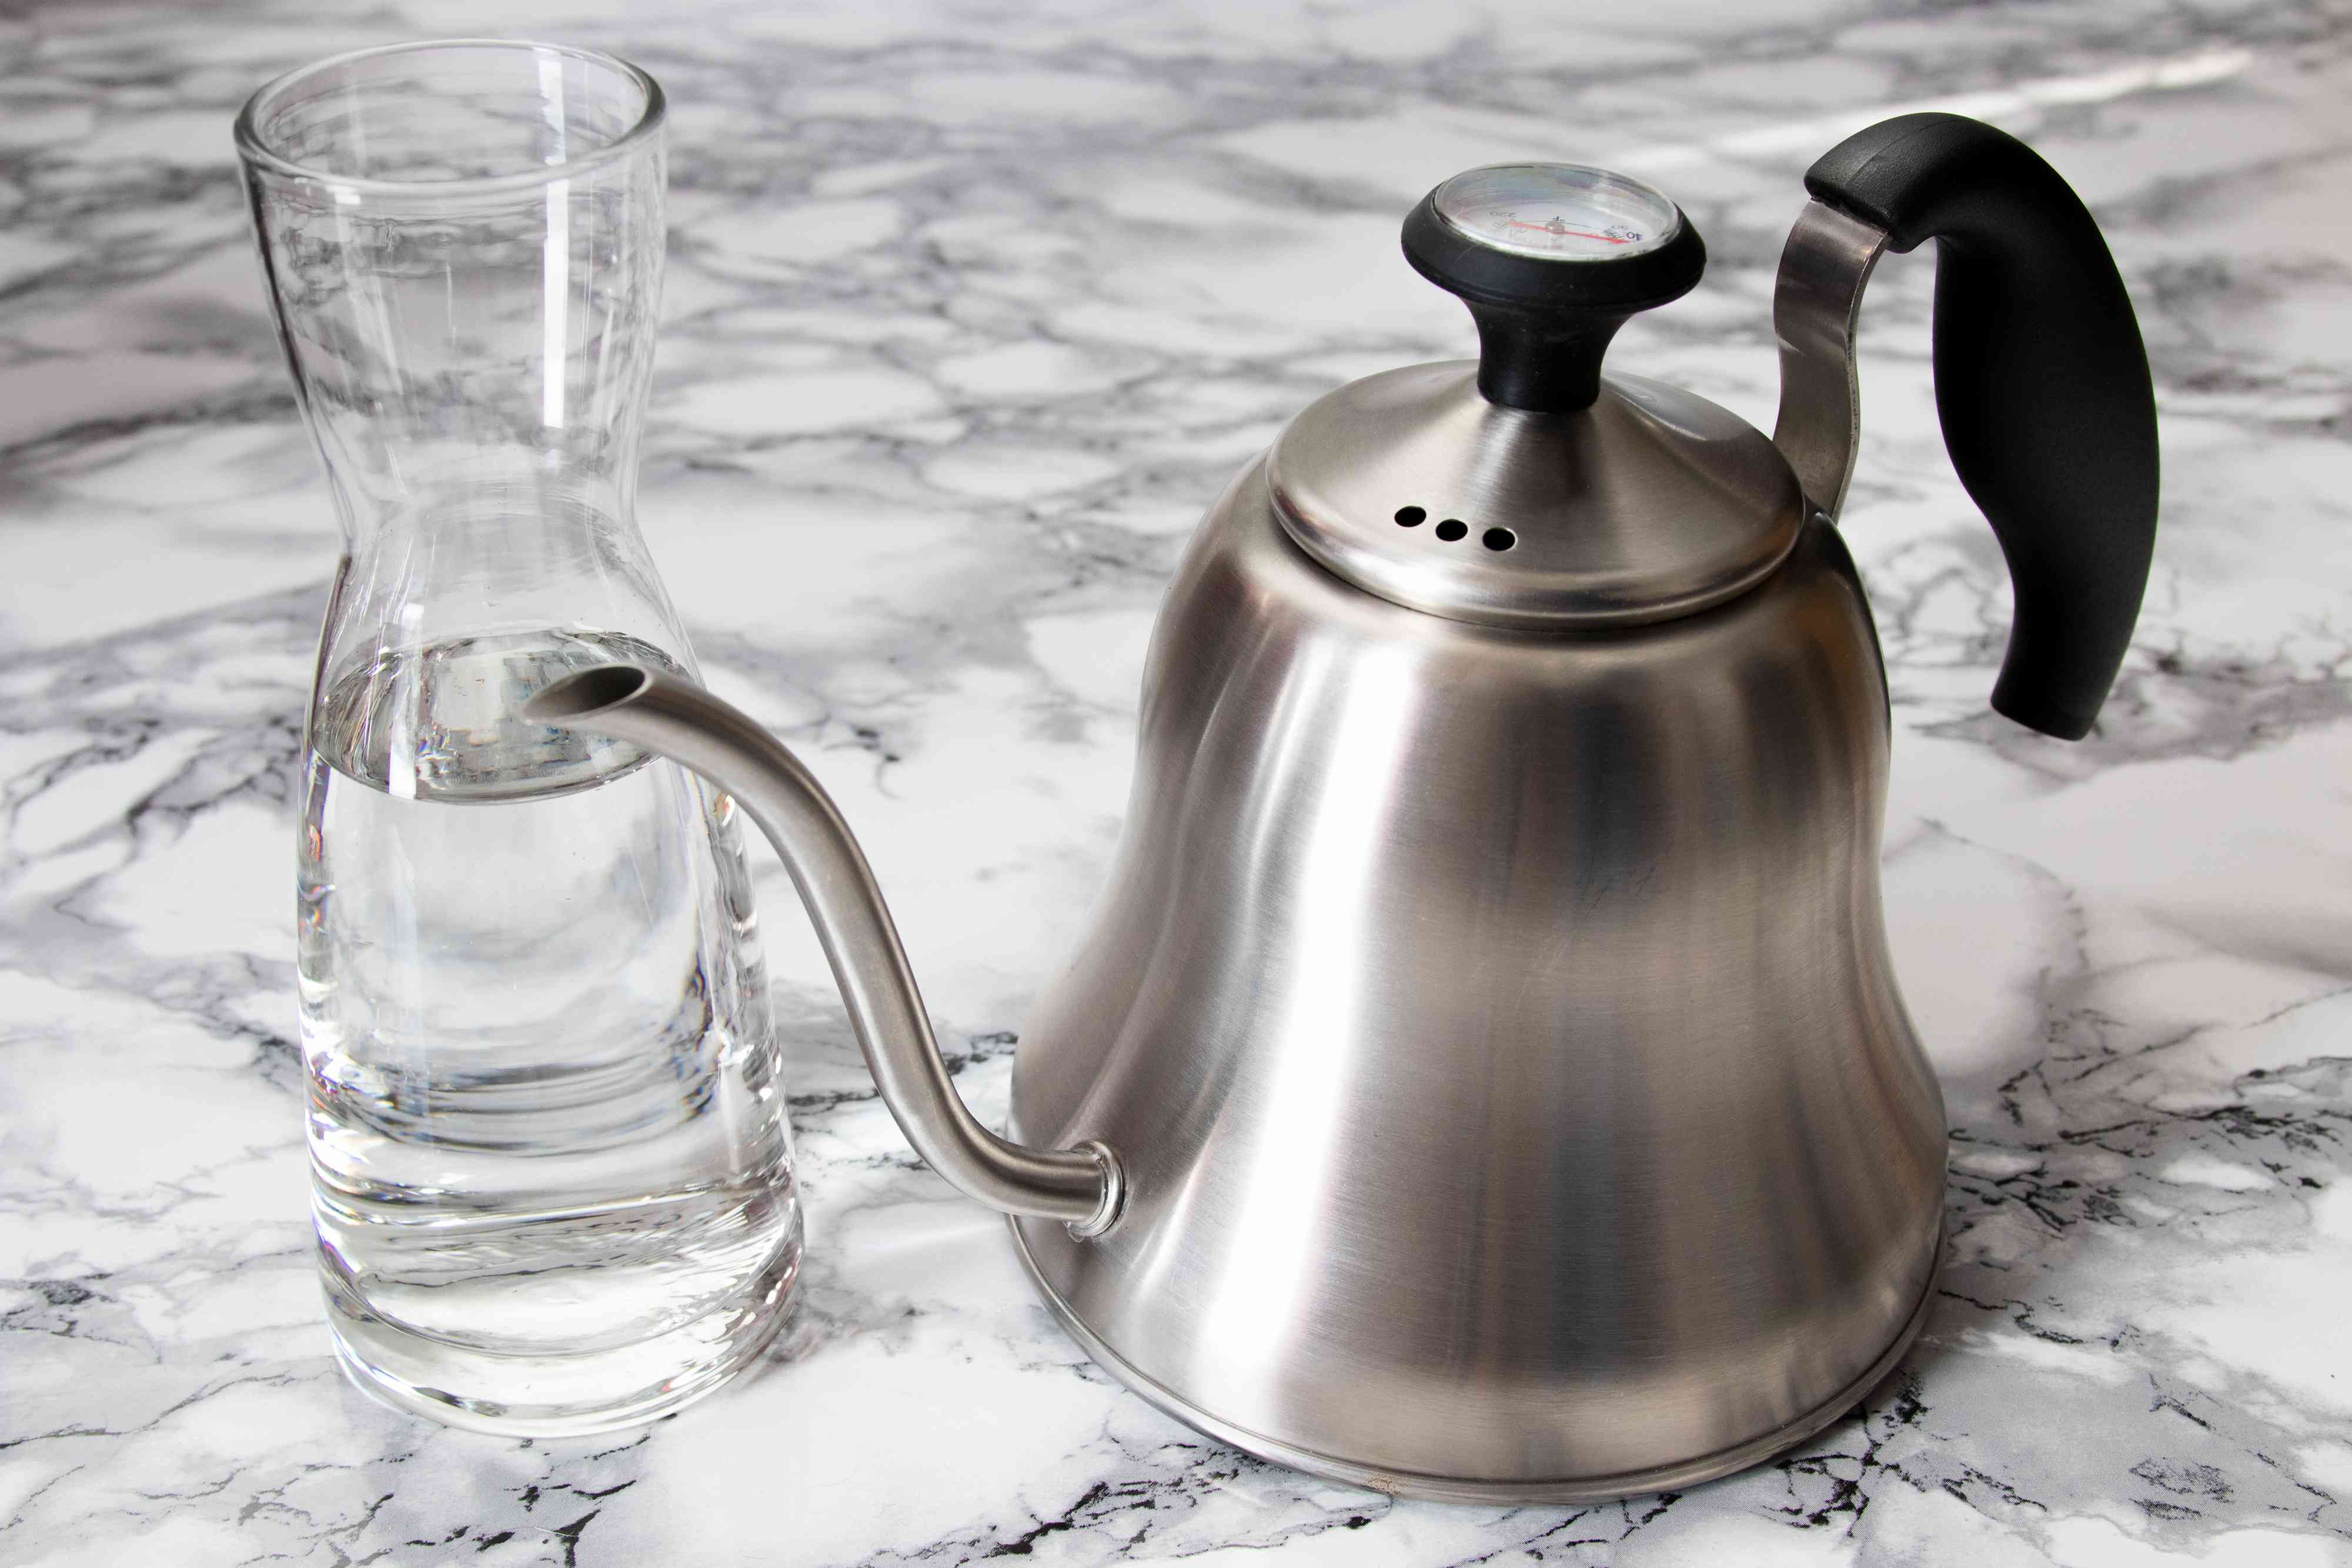 Gooseneck Kettle for Pour-Over Coffee